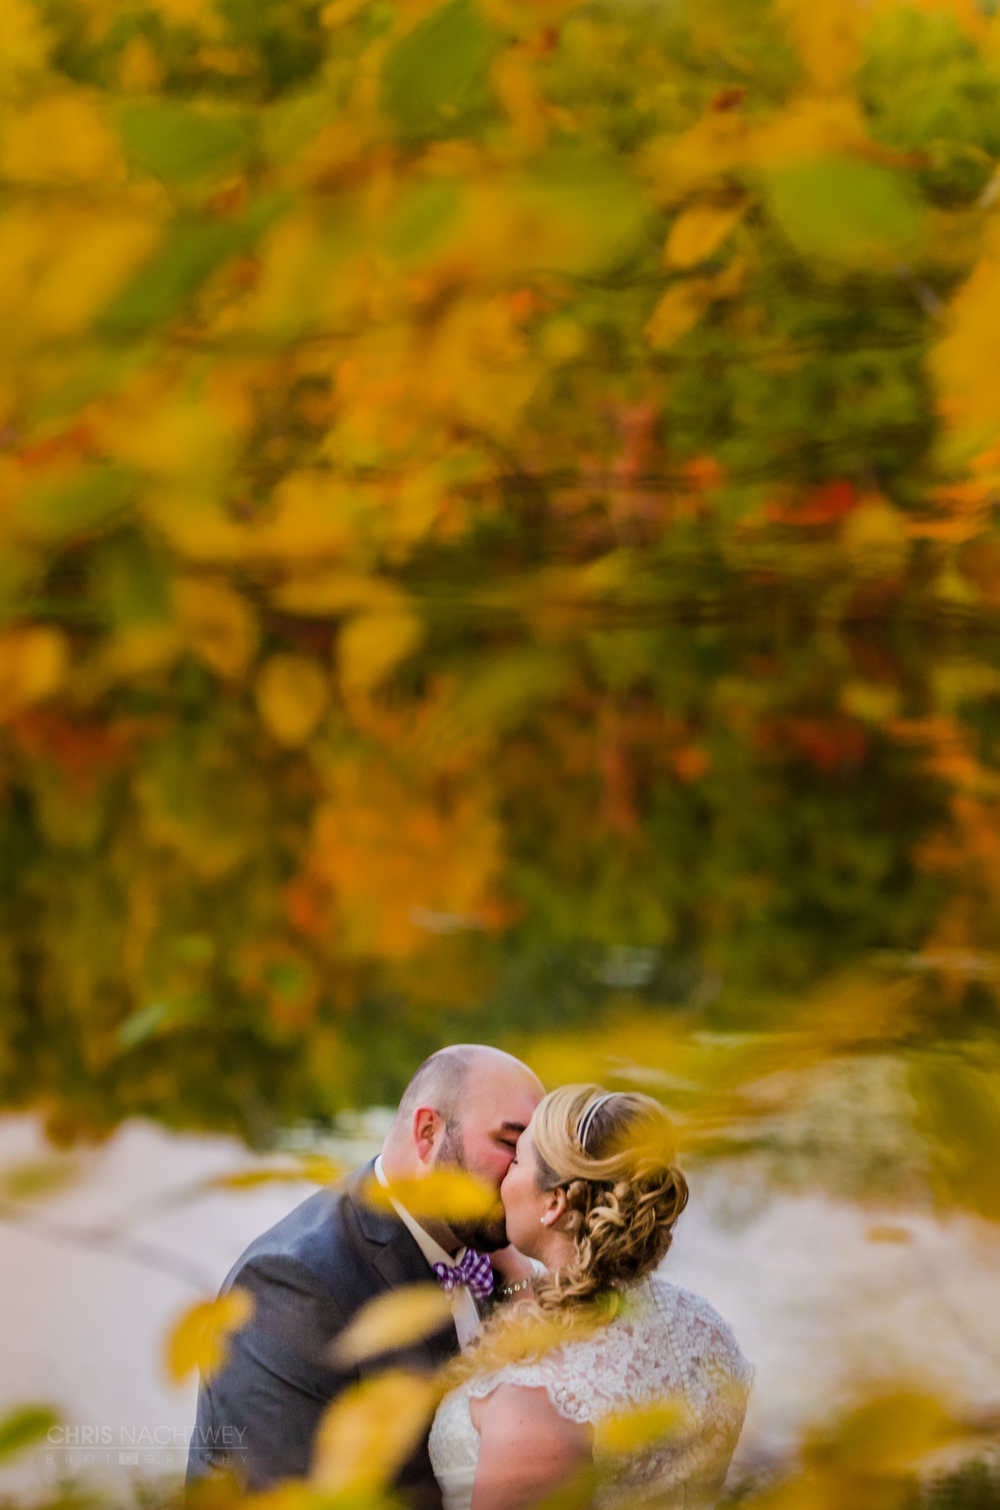 artistic-fall-wedding-photos-connecticut-chris-nachtwey.jpg